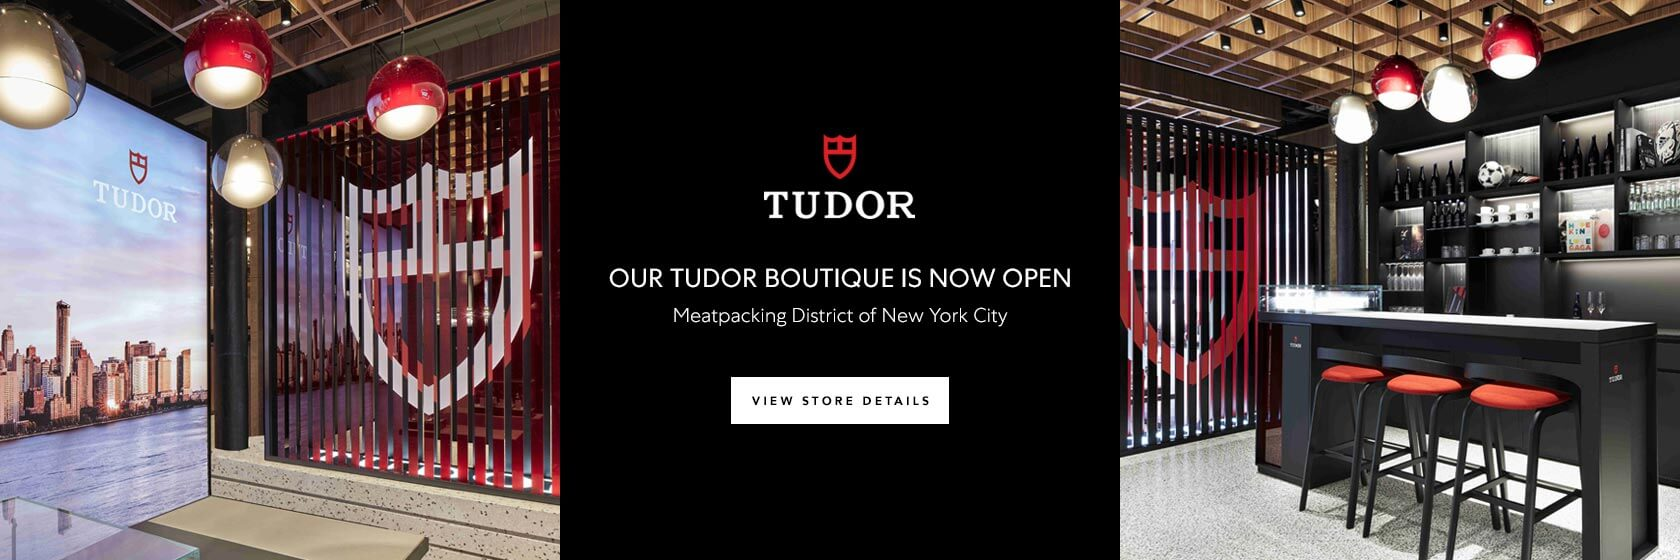 TUDOR Meatpacking Boutique Now Open